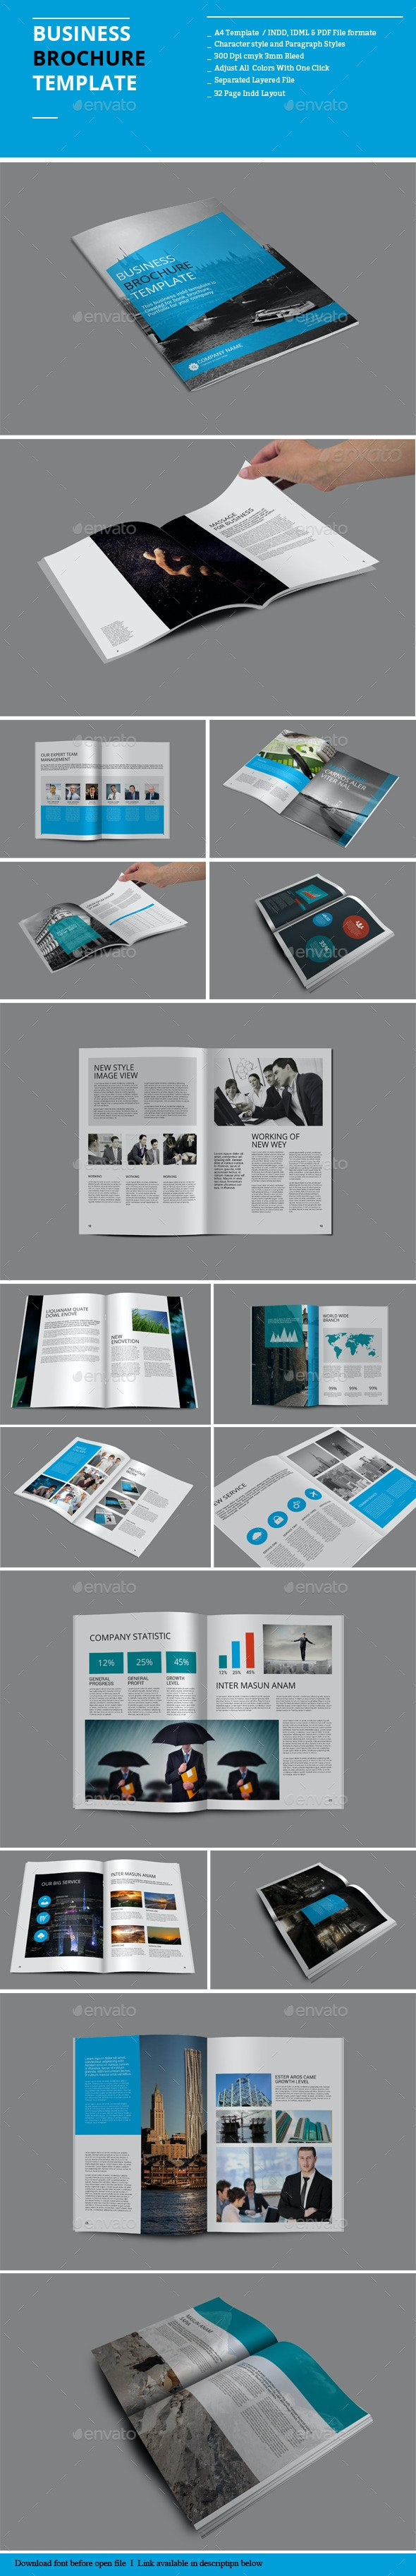 Business Brochure Templates - Corporate Brochures